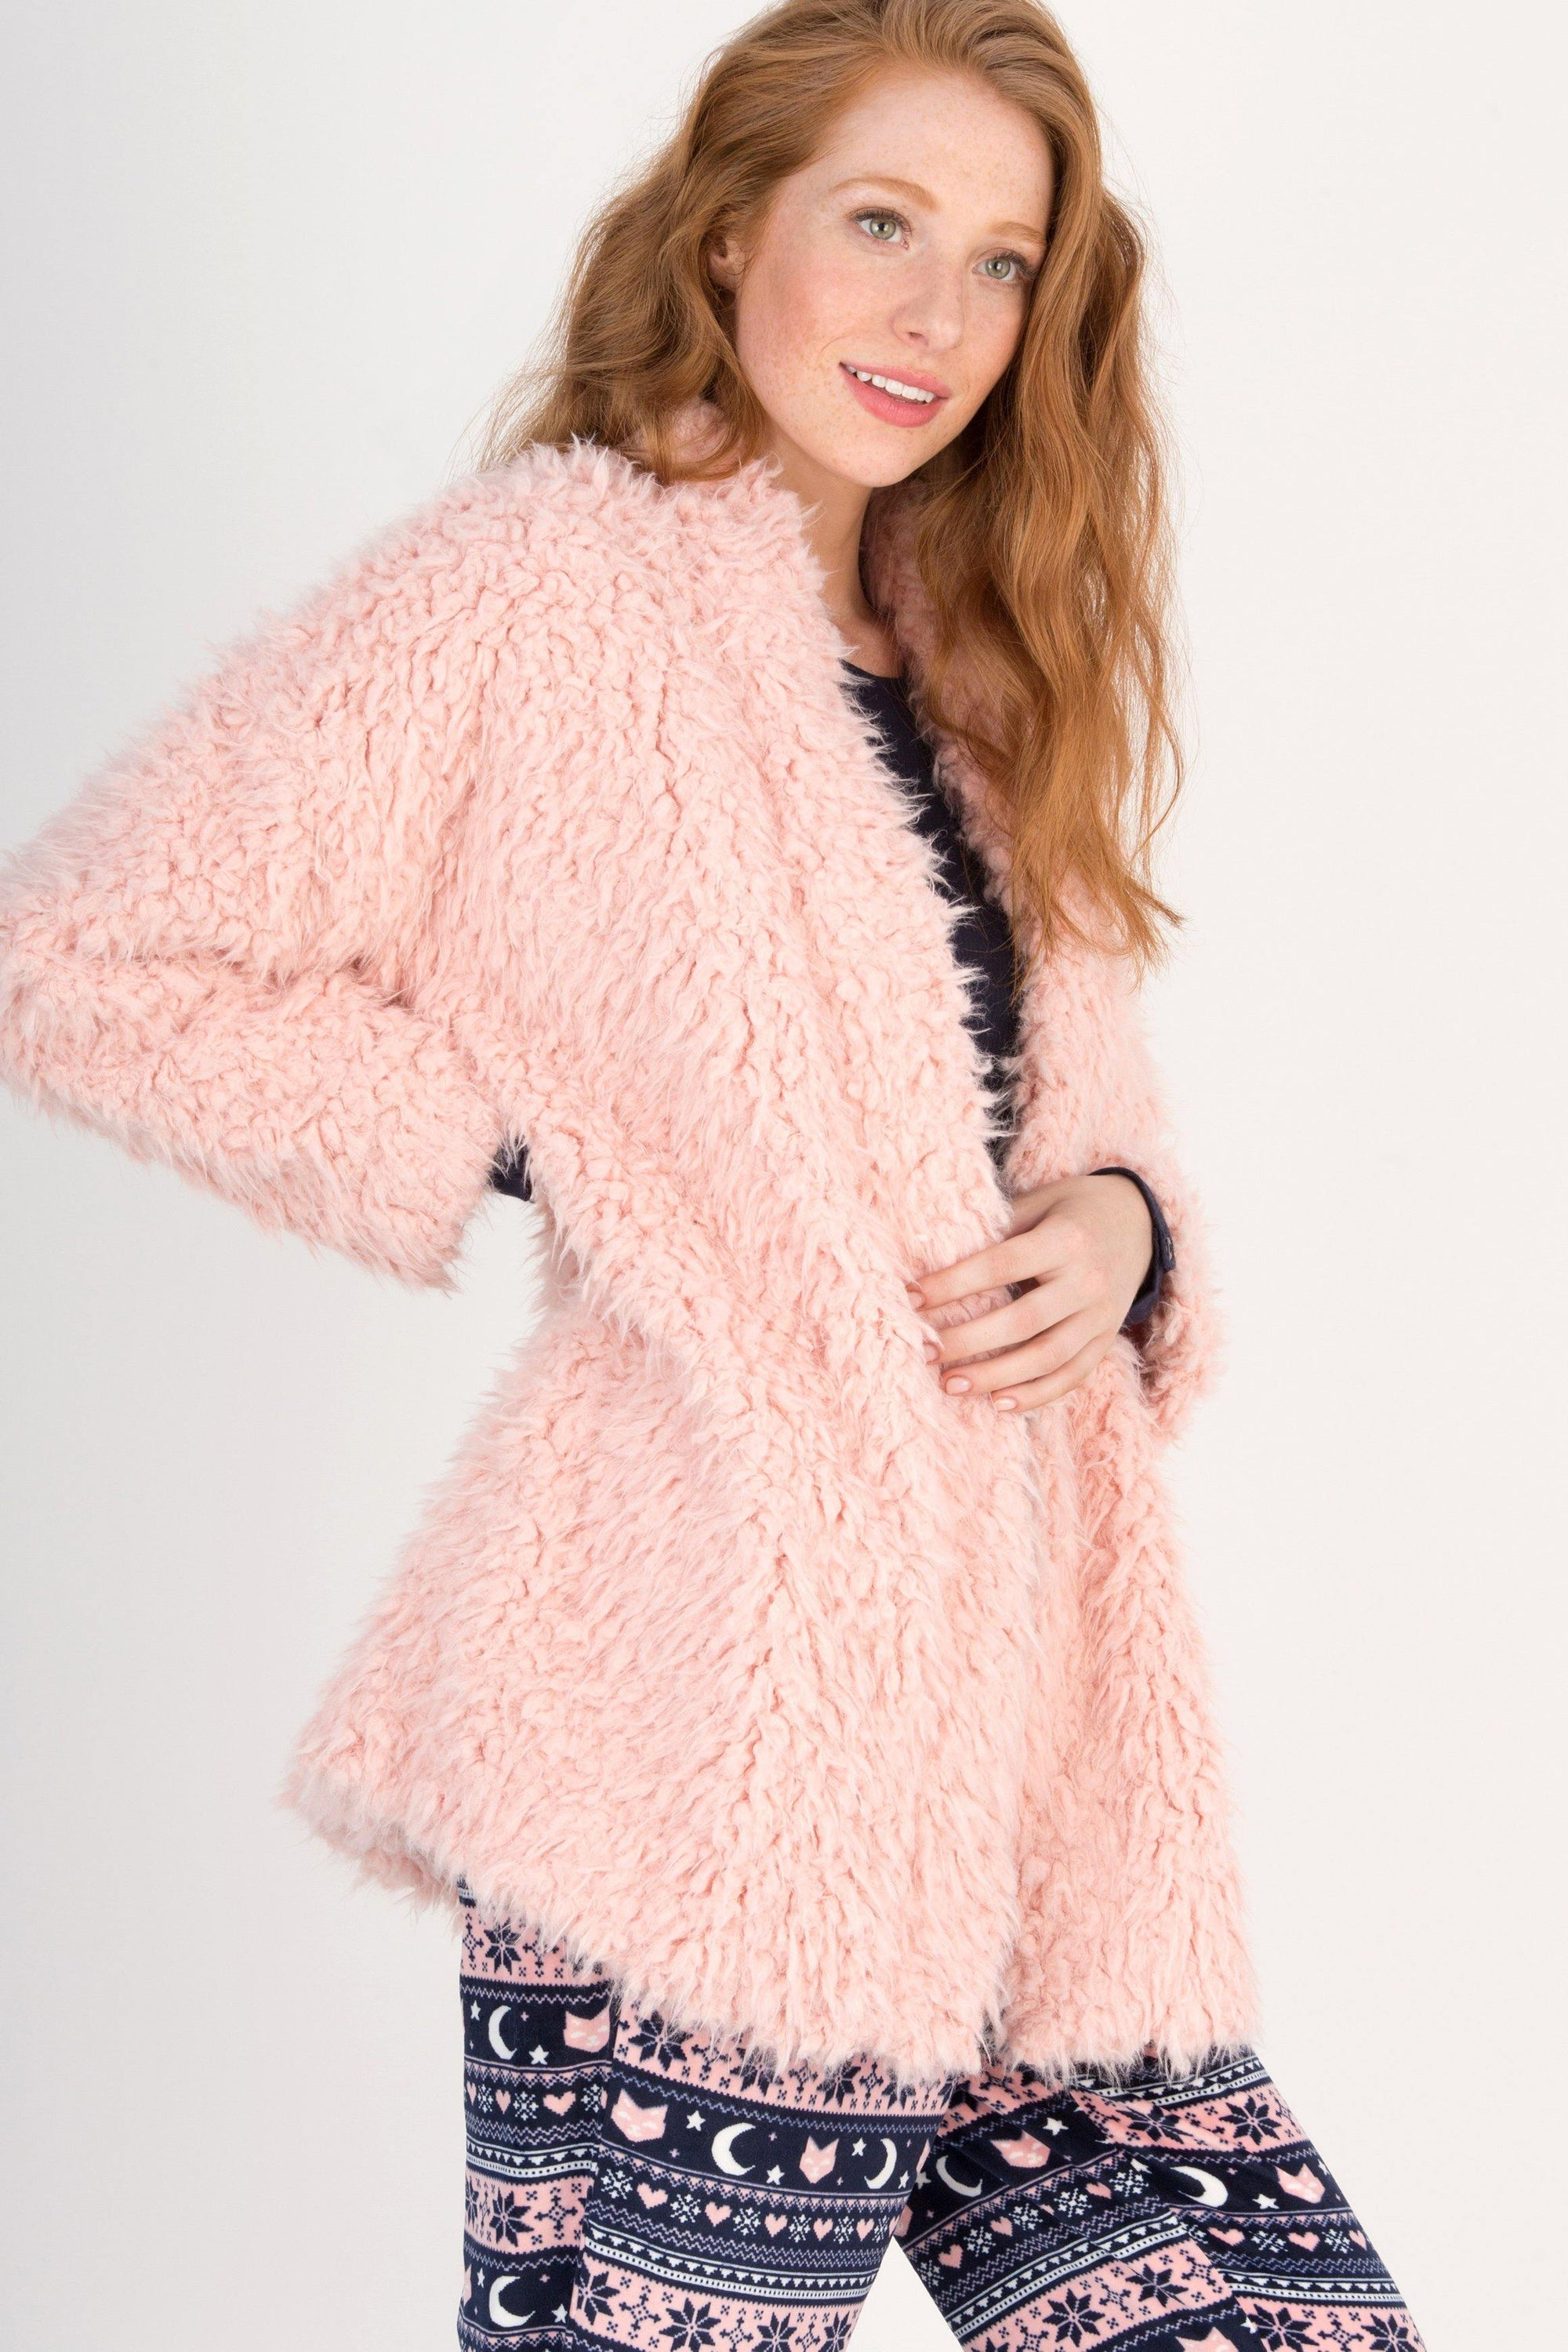 Snow Bunny Shaggy Fleece Cardi